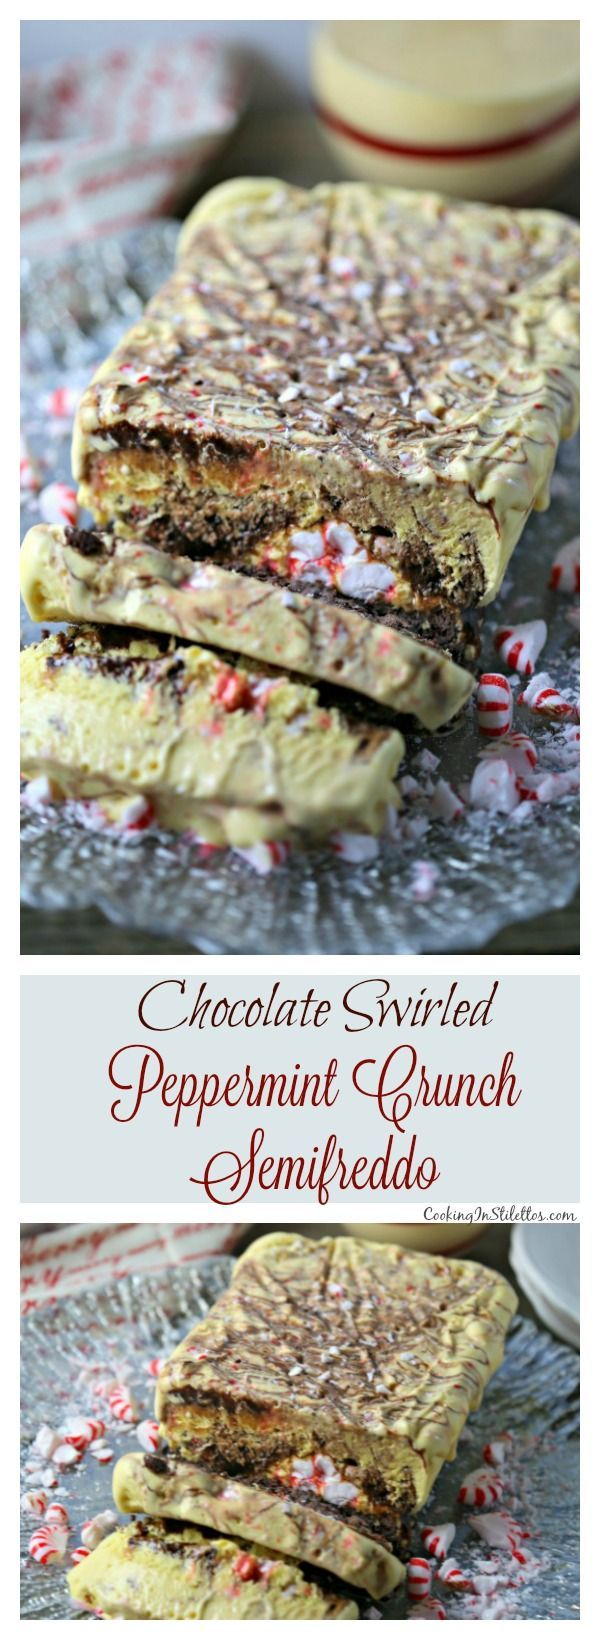 For the holidays, this rich and creamy Chocolate Swirled Peppermint Crunch Semifreddo from http://CookingInStilettos.com is the perfect make-ahead dessert and is so easy to make!